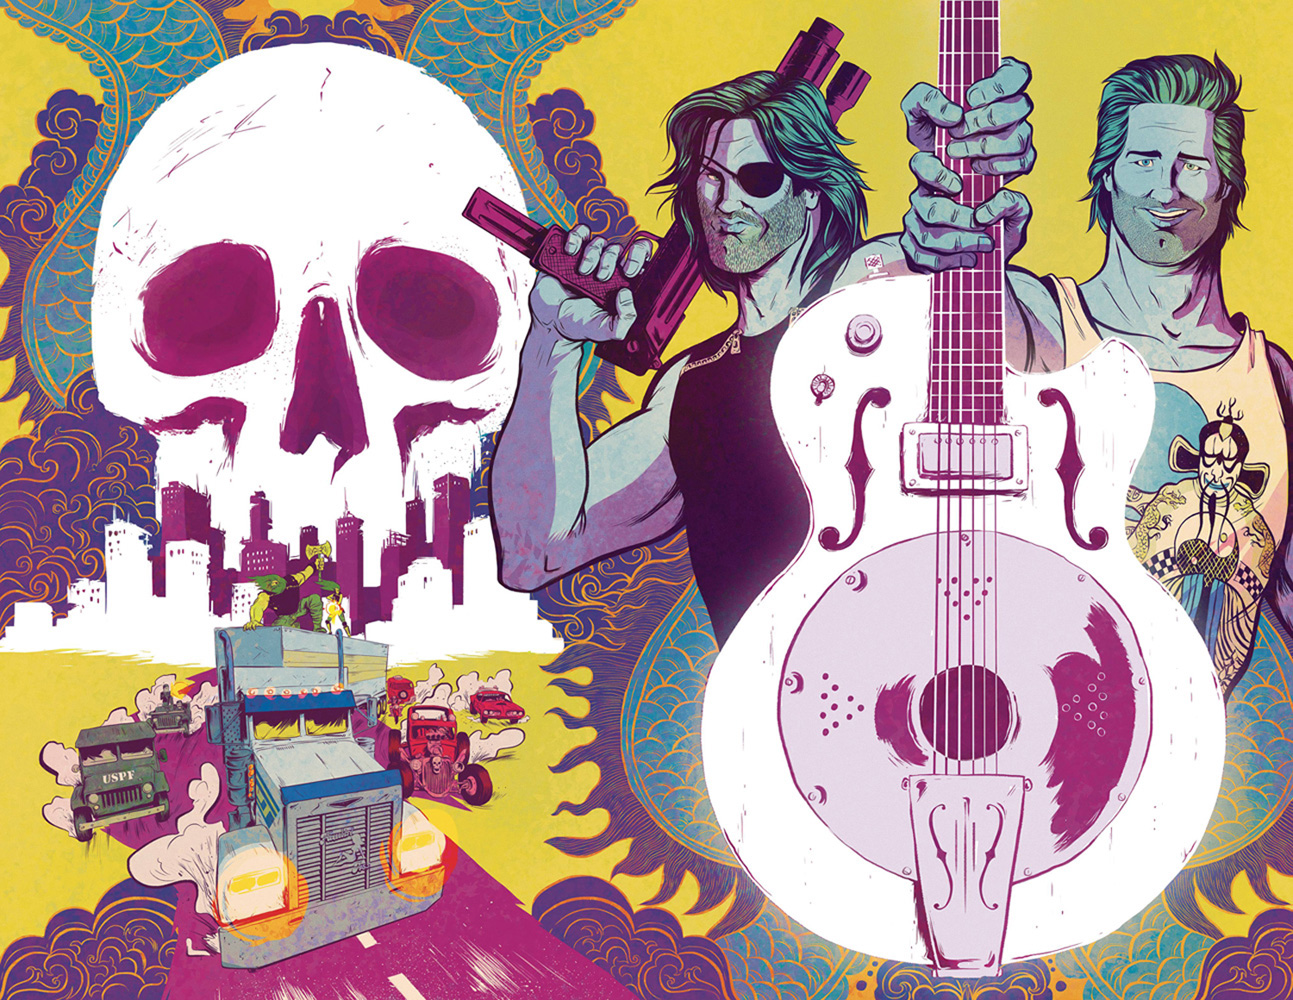 Big Trouble in Little China / Escape from New York #5 (Bayliss wraparound cover)  [2017] - Boom! Studios